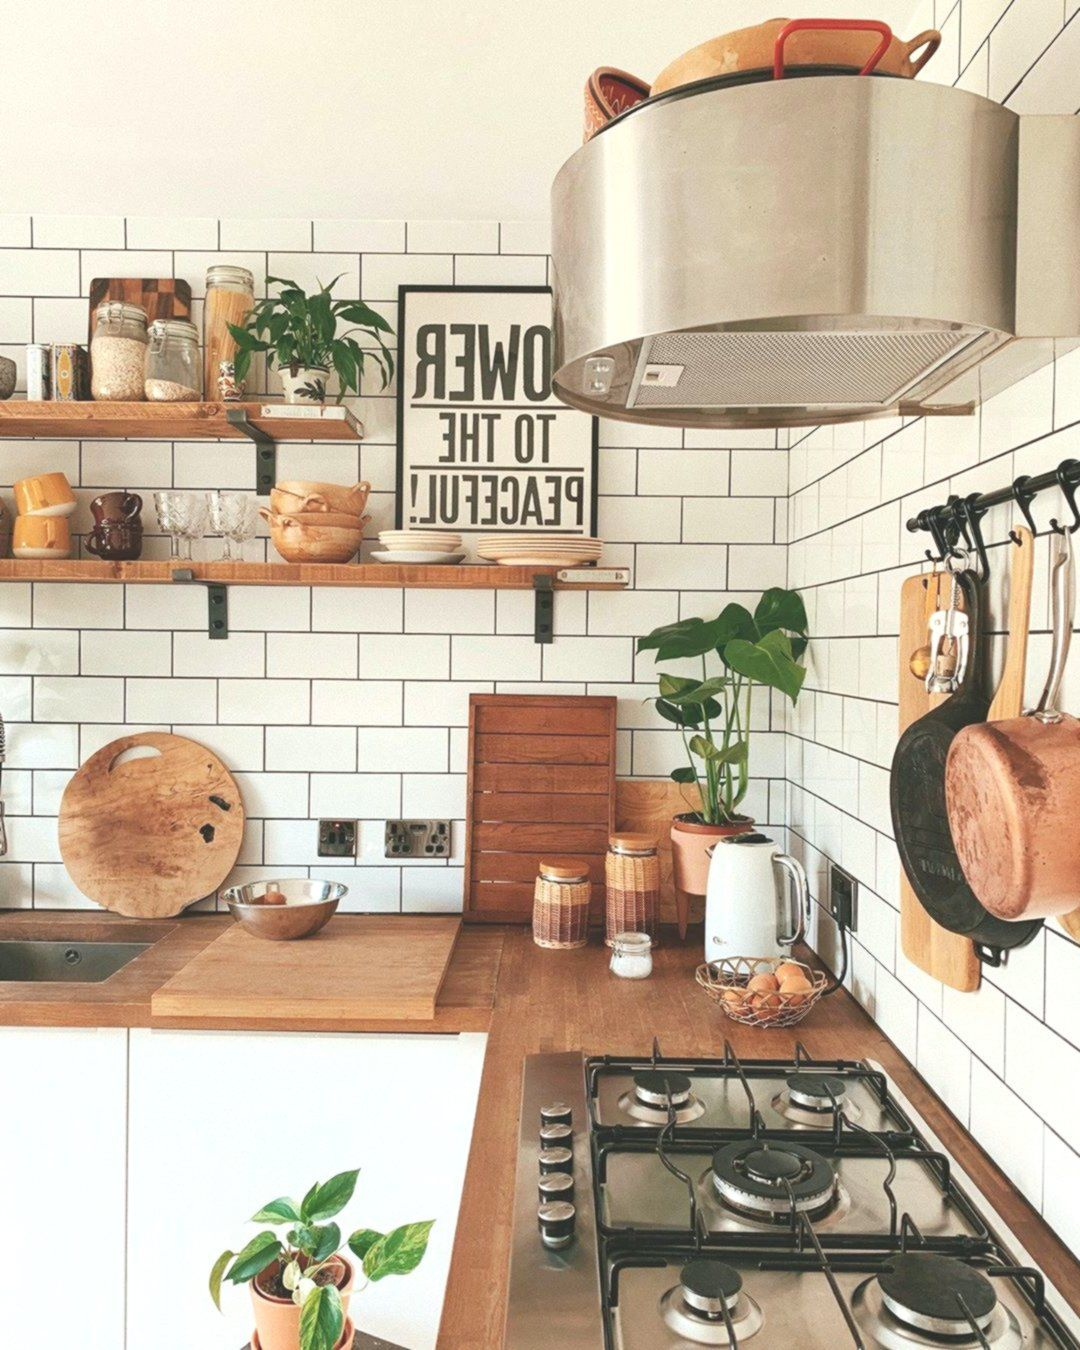 10 Ways To Transform Kitchen Cabinets Without Replacing Them In 2020 Kitchen Design Decor Kitchen Decor Home Decor